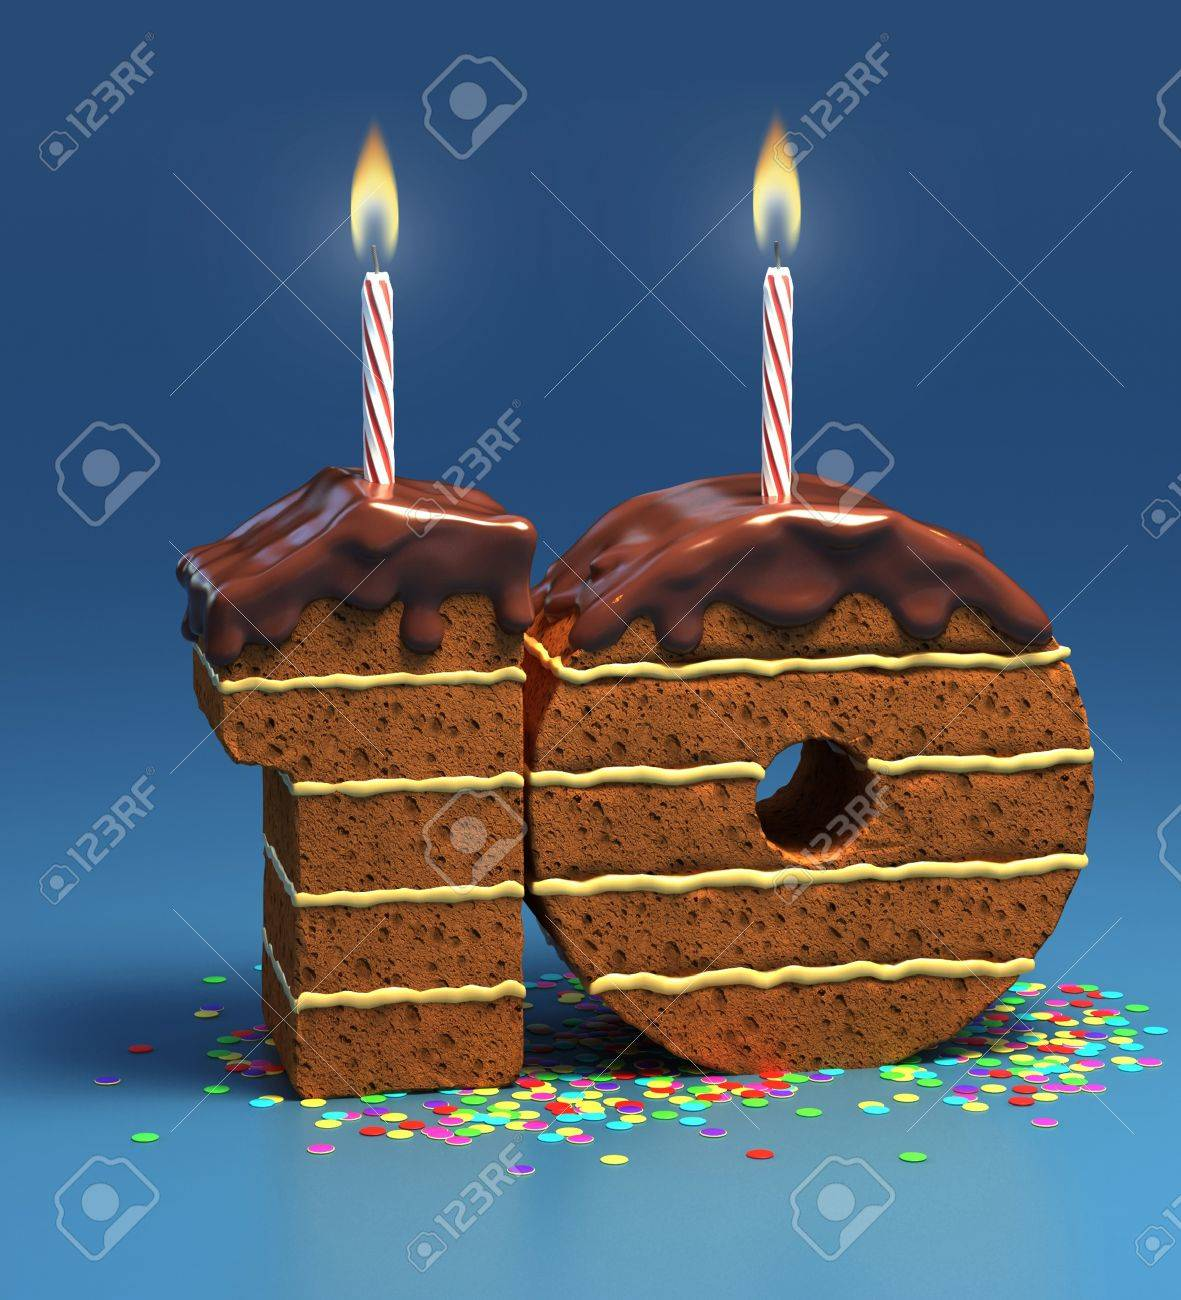 Chocolate birthday cake surrounded by confetti with lit candle for a tenth birthday or anniversary celebration Stock Photo - 12331008